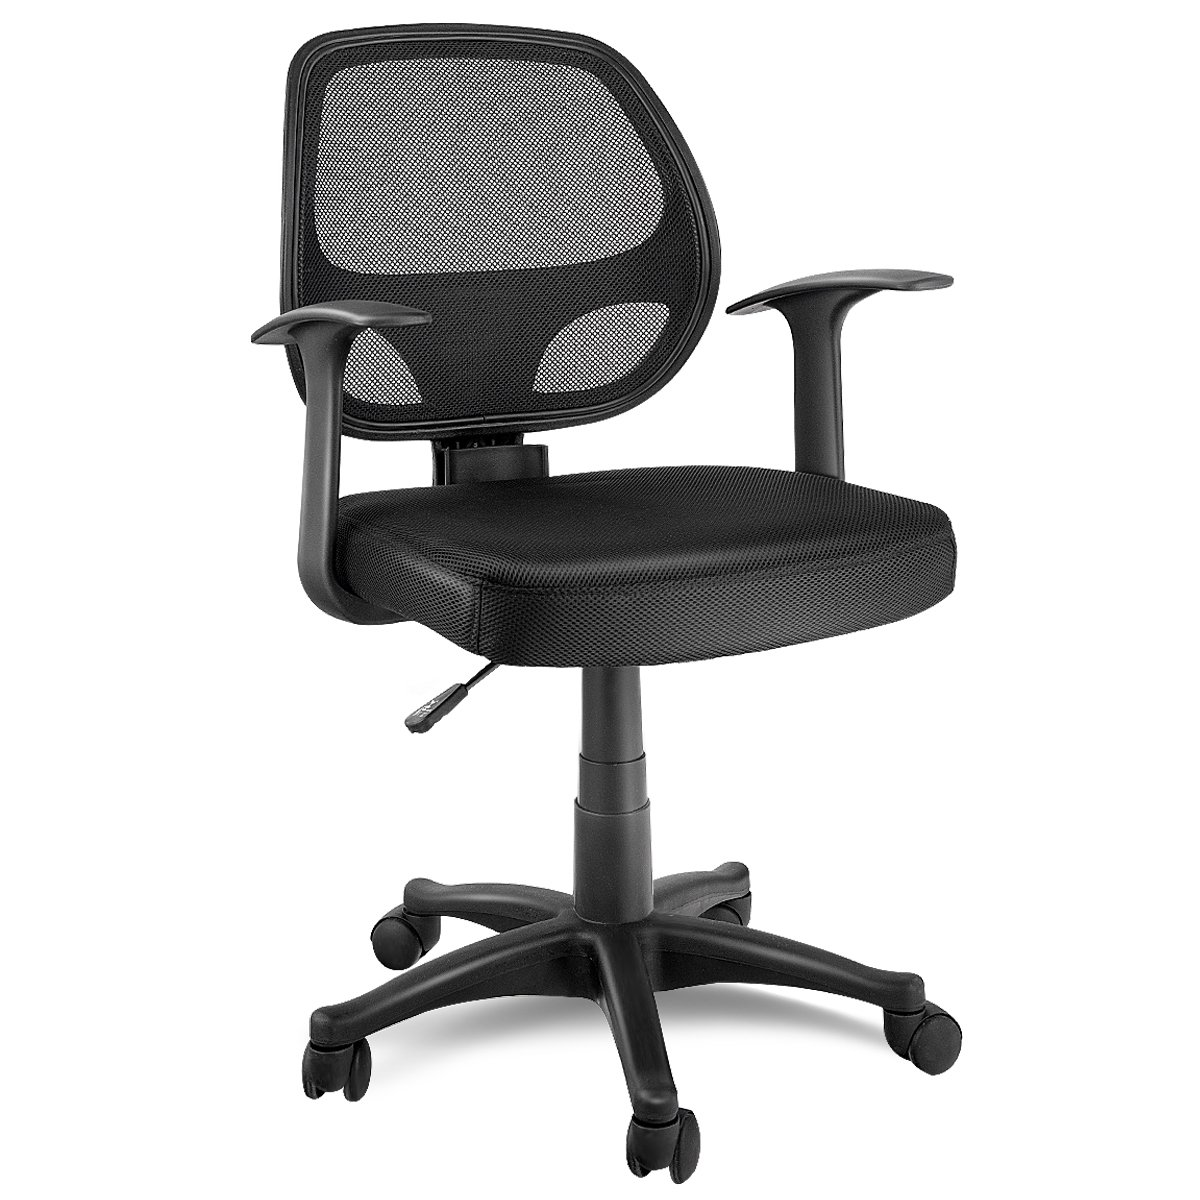 Giantex Mid-Back Task Office Chair Mesh Chair Adjustable Seat Height Ergonomic Swivel Computer Desk Chair Executive Office Chair, Black